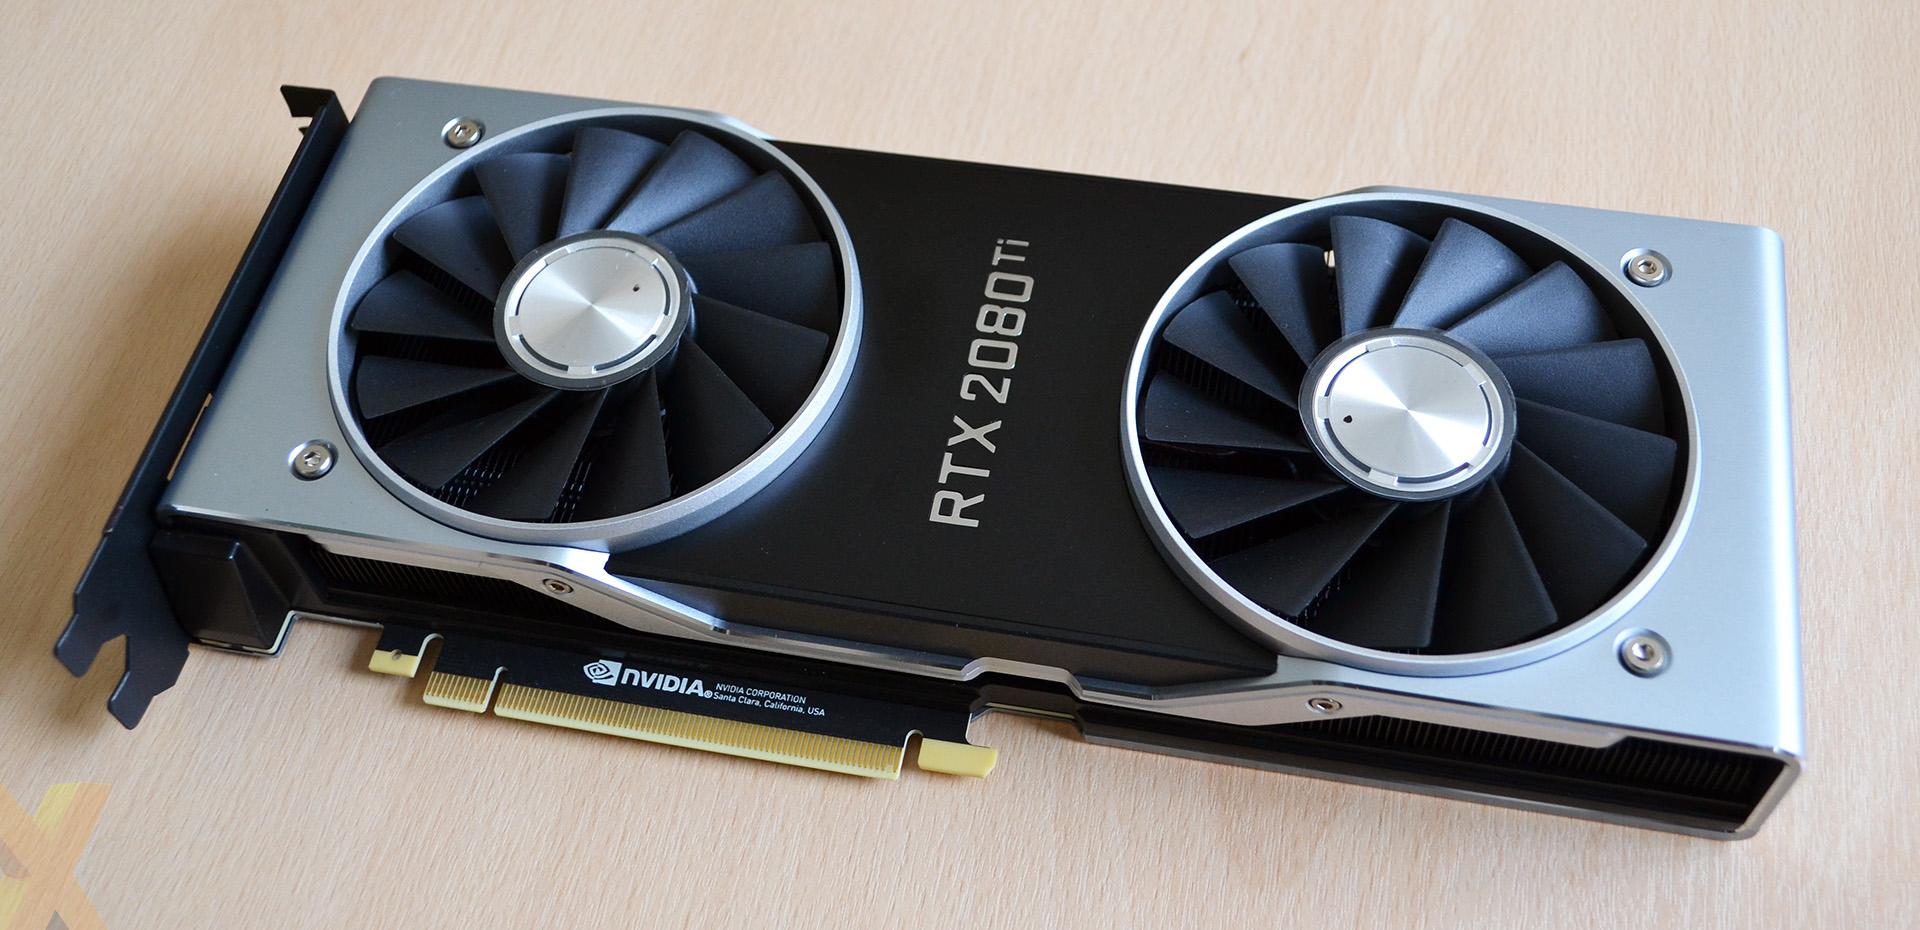 Review: Nvidia GeForce RTX 2080 Ti and RTX 2080 - Graphics